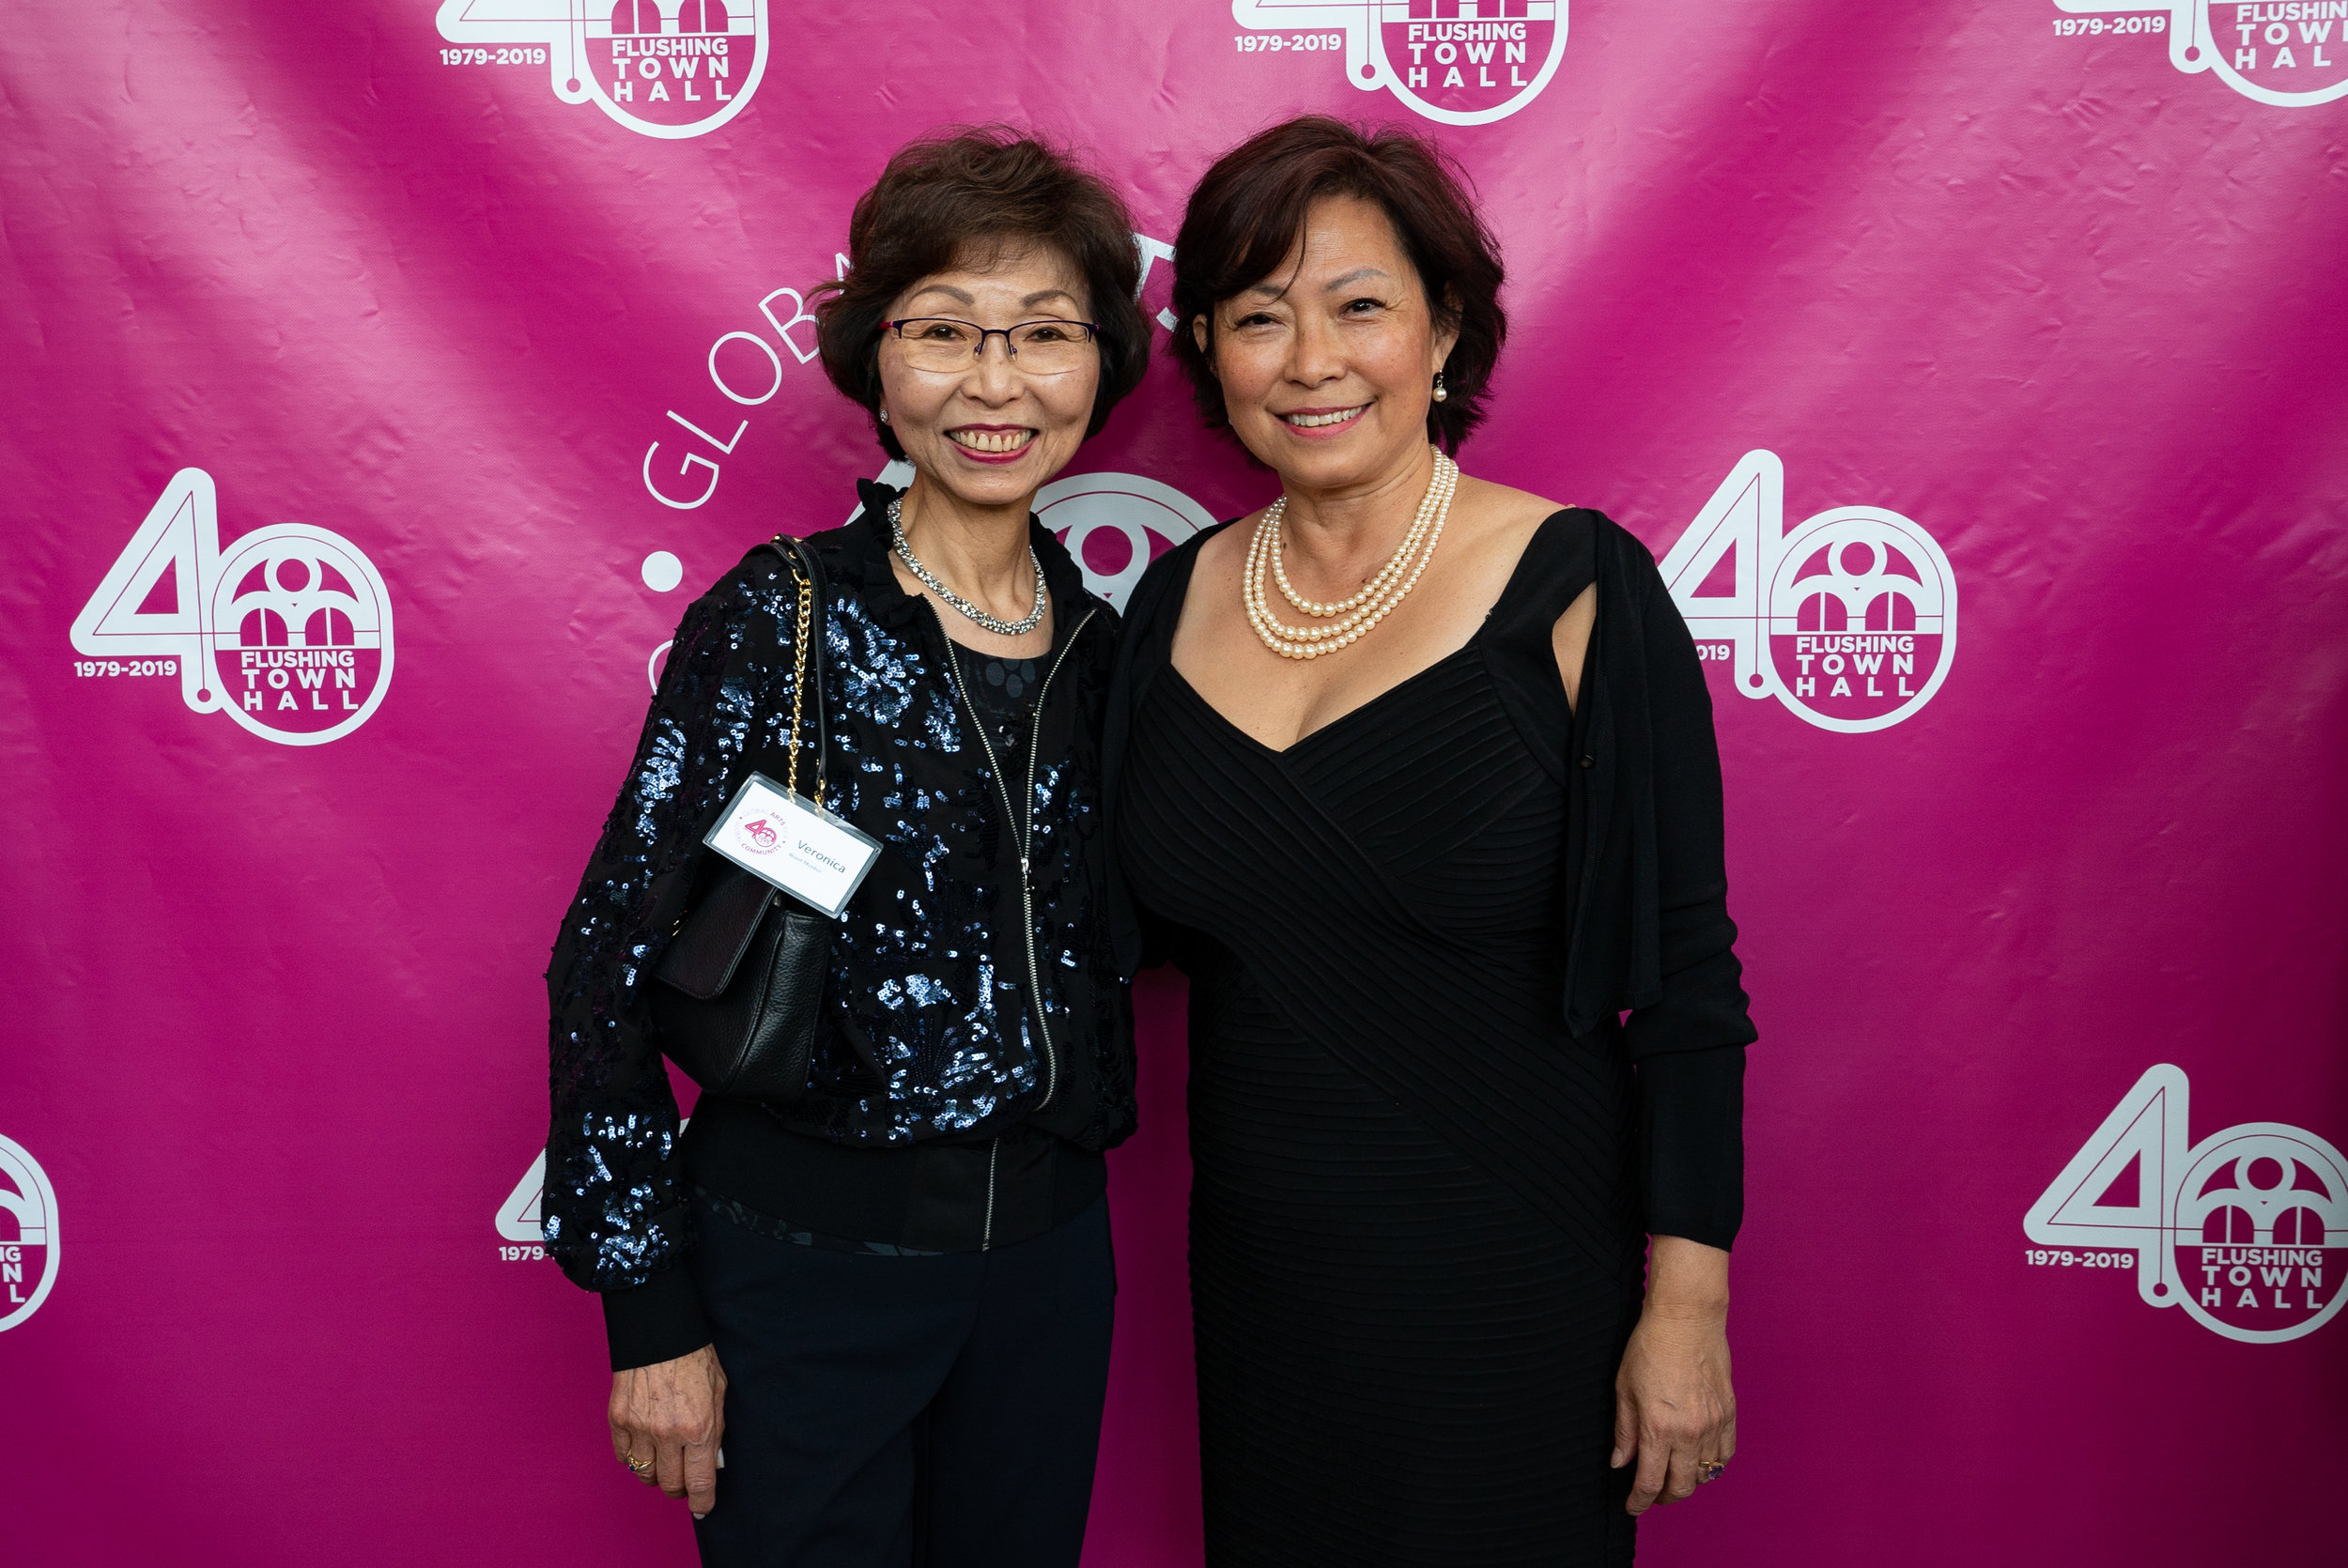 Flushing Town Hall held its 40th annual gala on June 6, 2019. Pictured (left to right) are: Board Vice President Veronica Y. Tsang and Honoree Emily Lin.